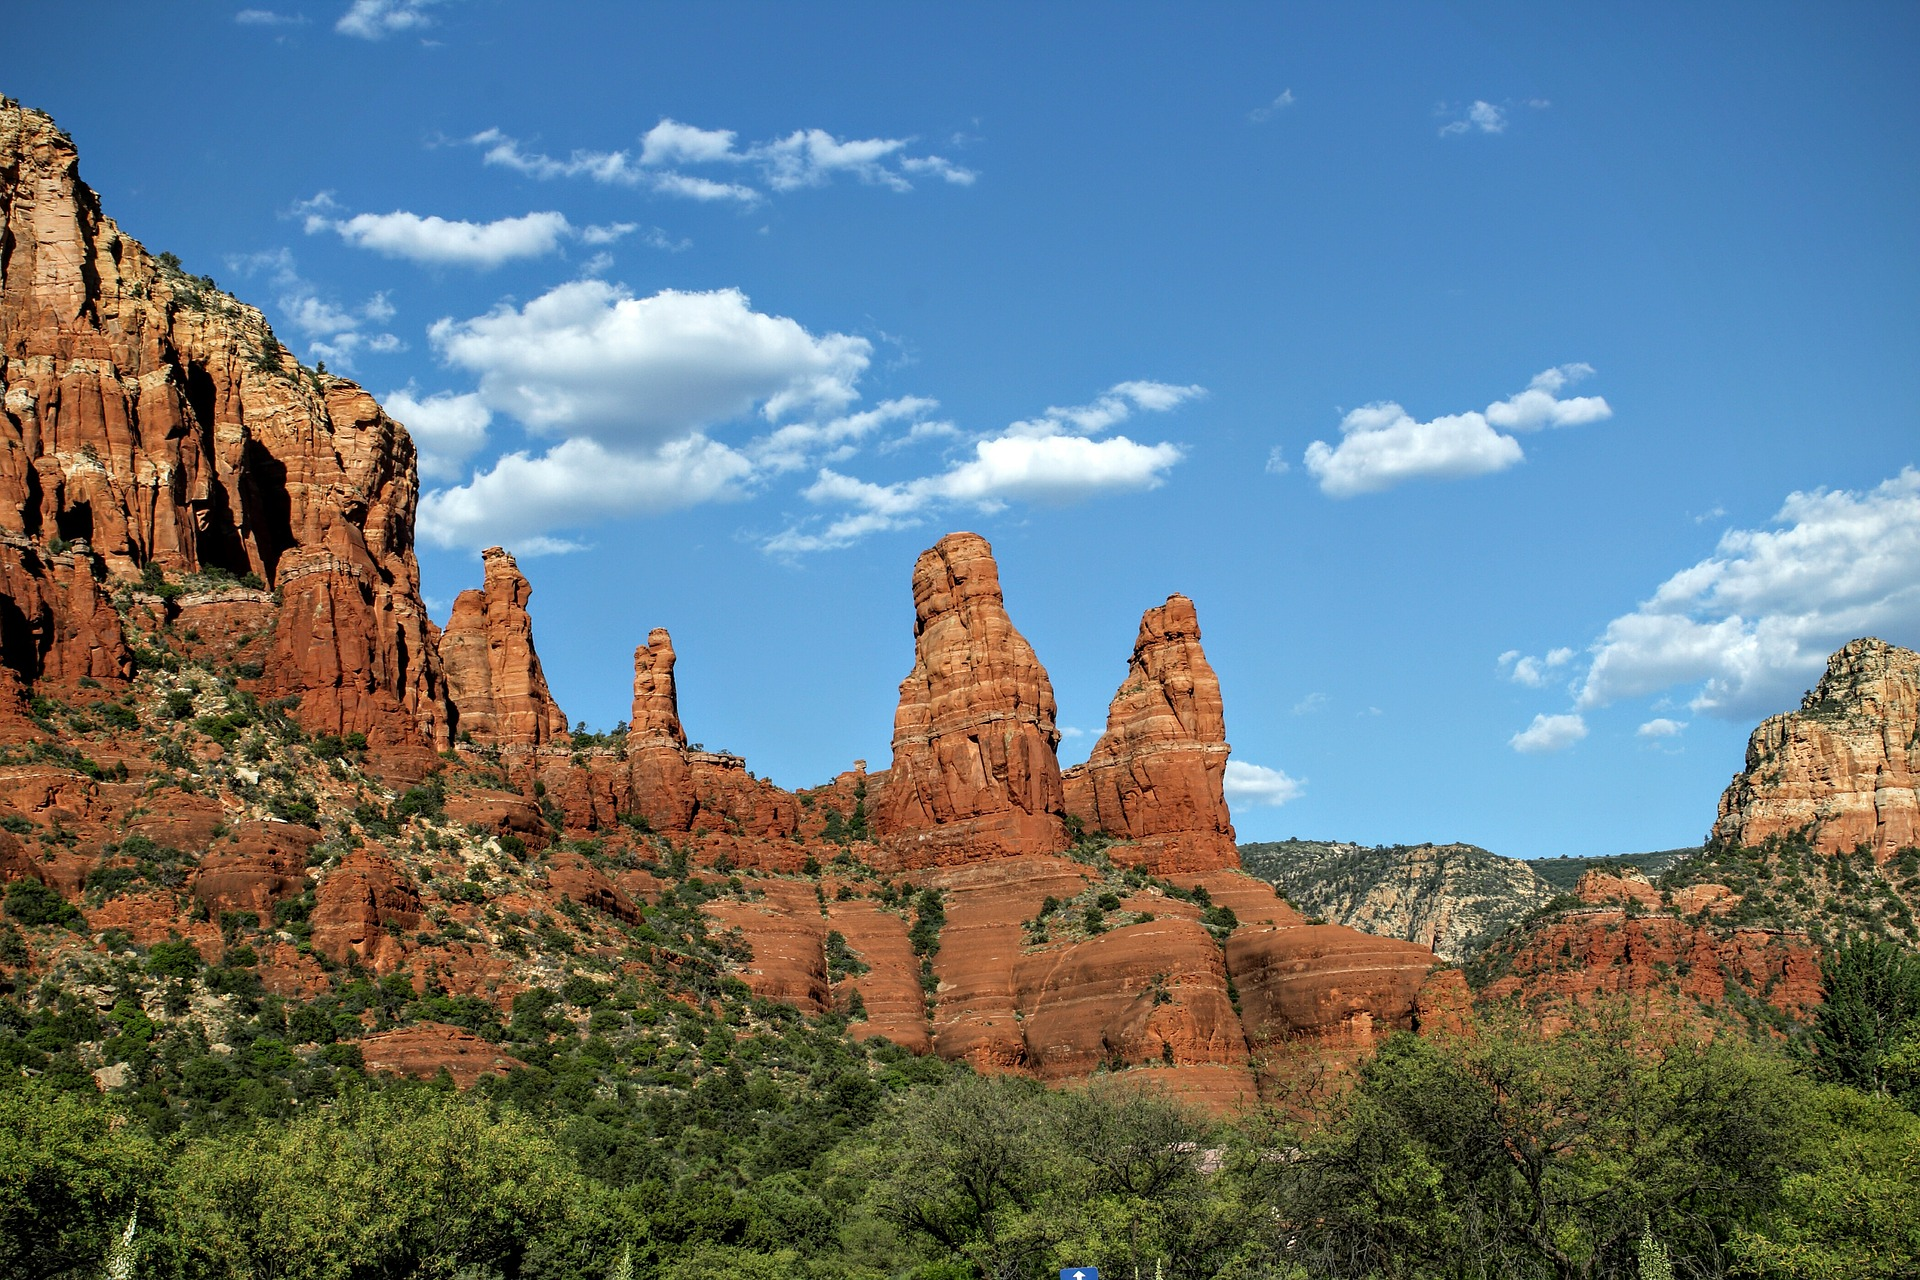 sedona views red rock formations blue sunny skies green trees